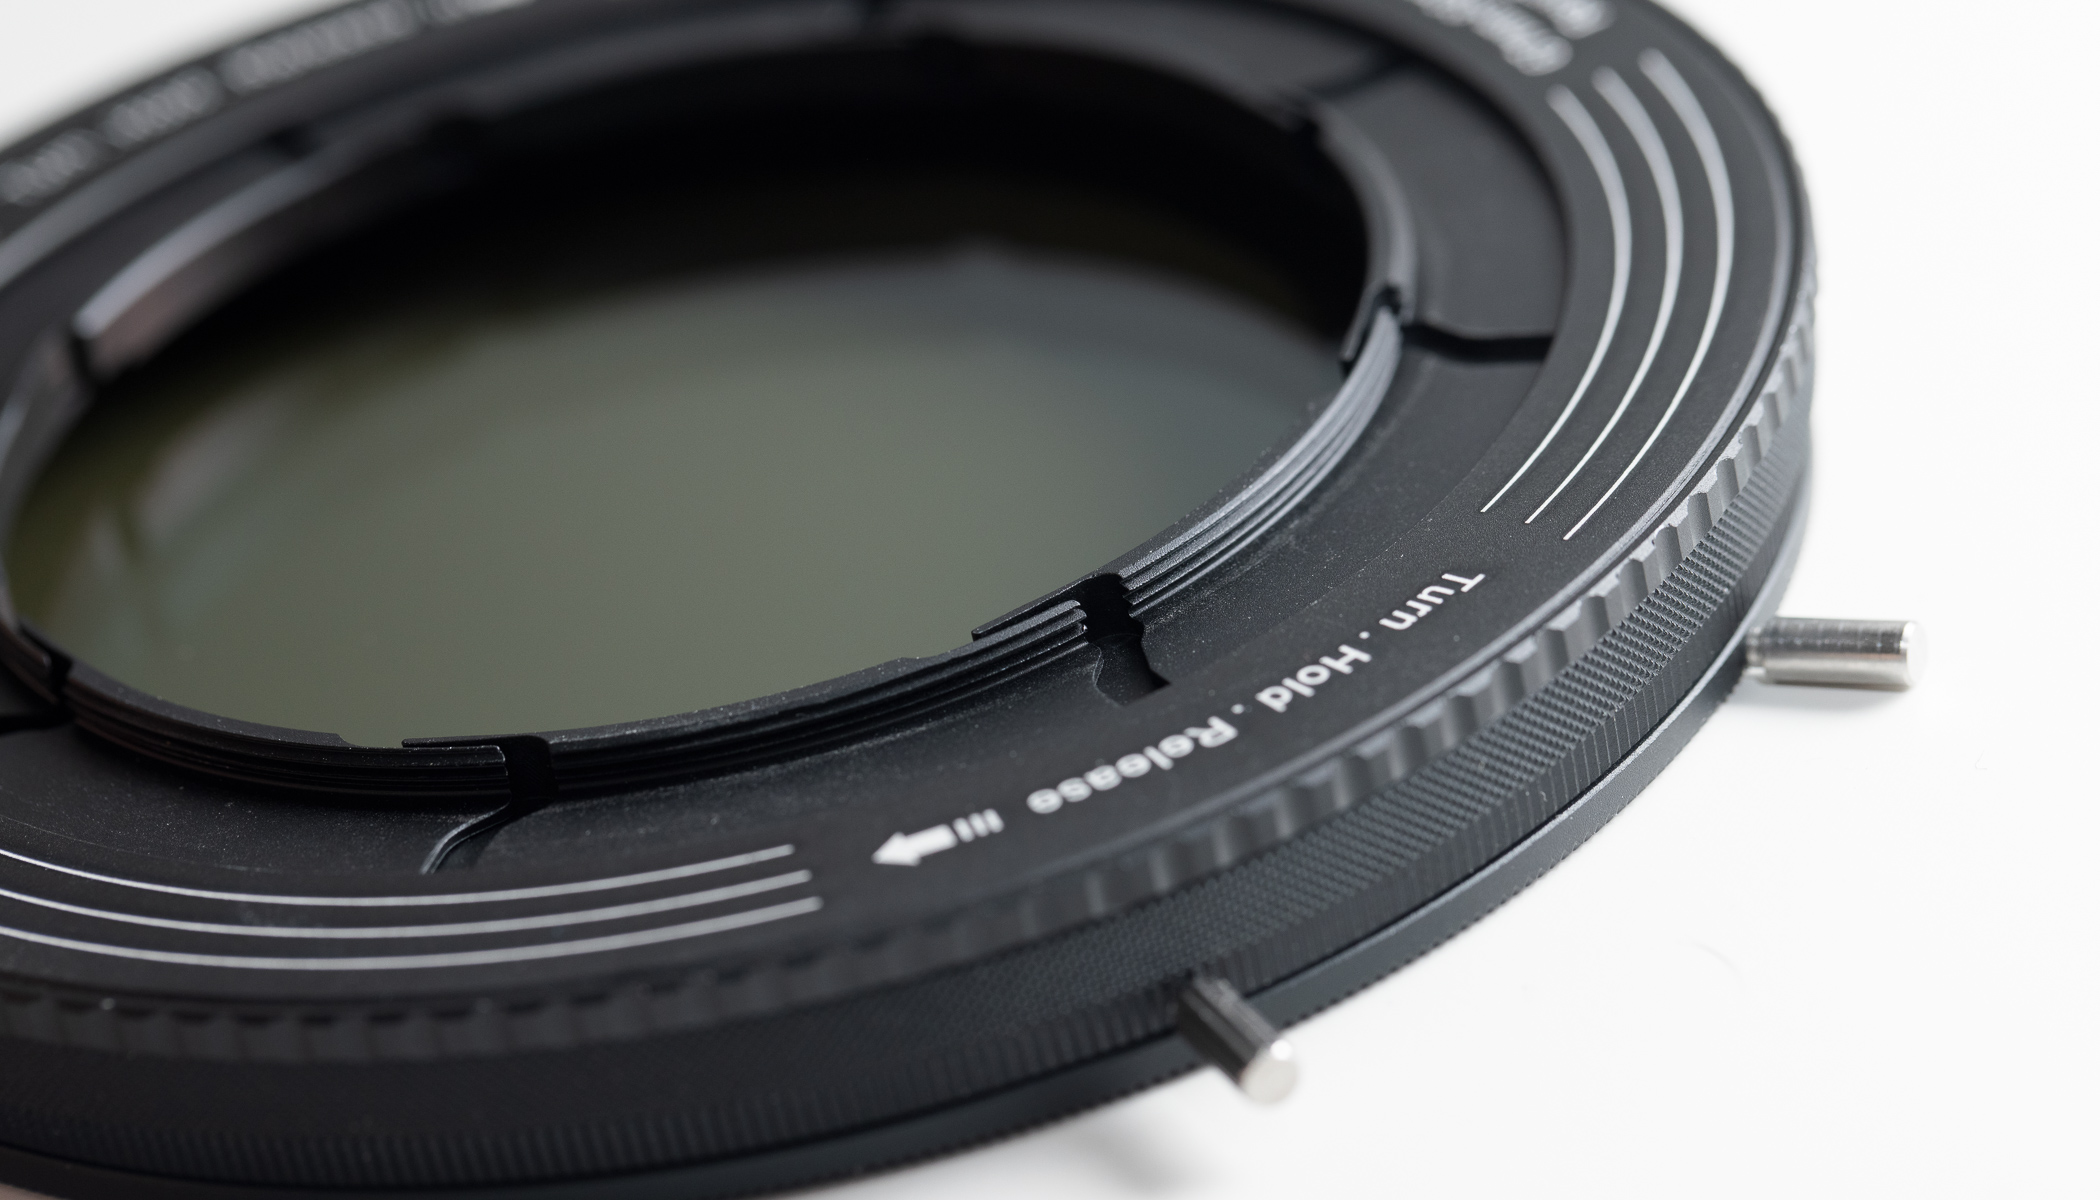 Test: Revoring kombiniert Polarisations- und variablen ND-Filter